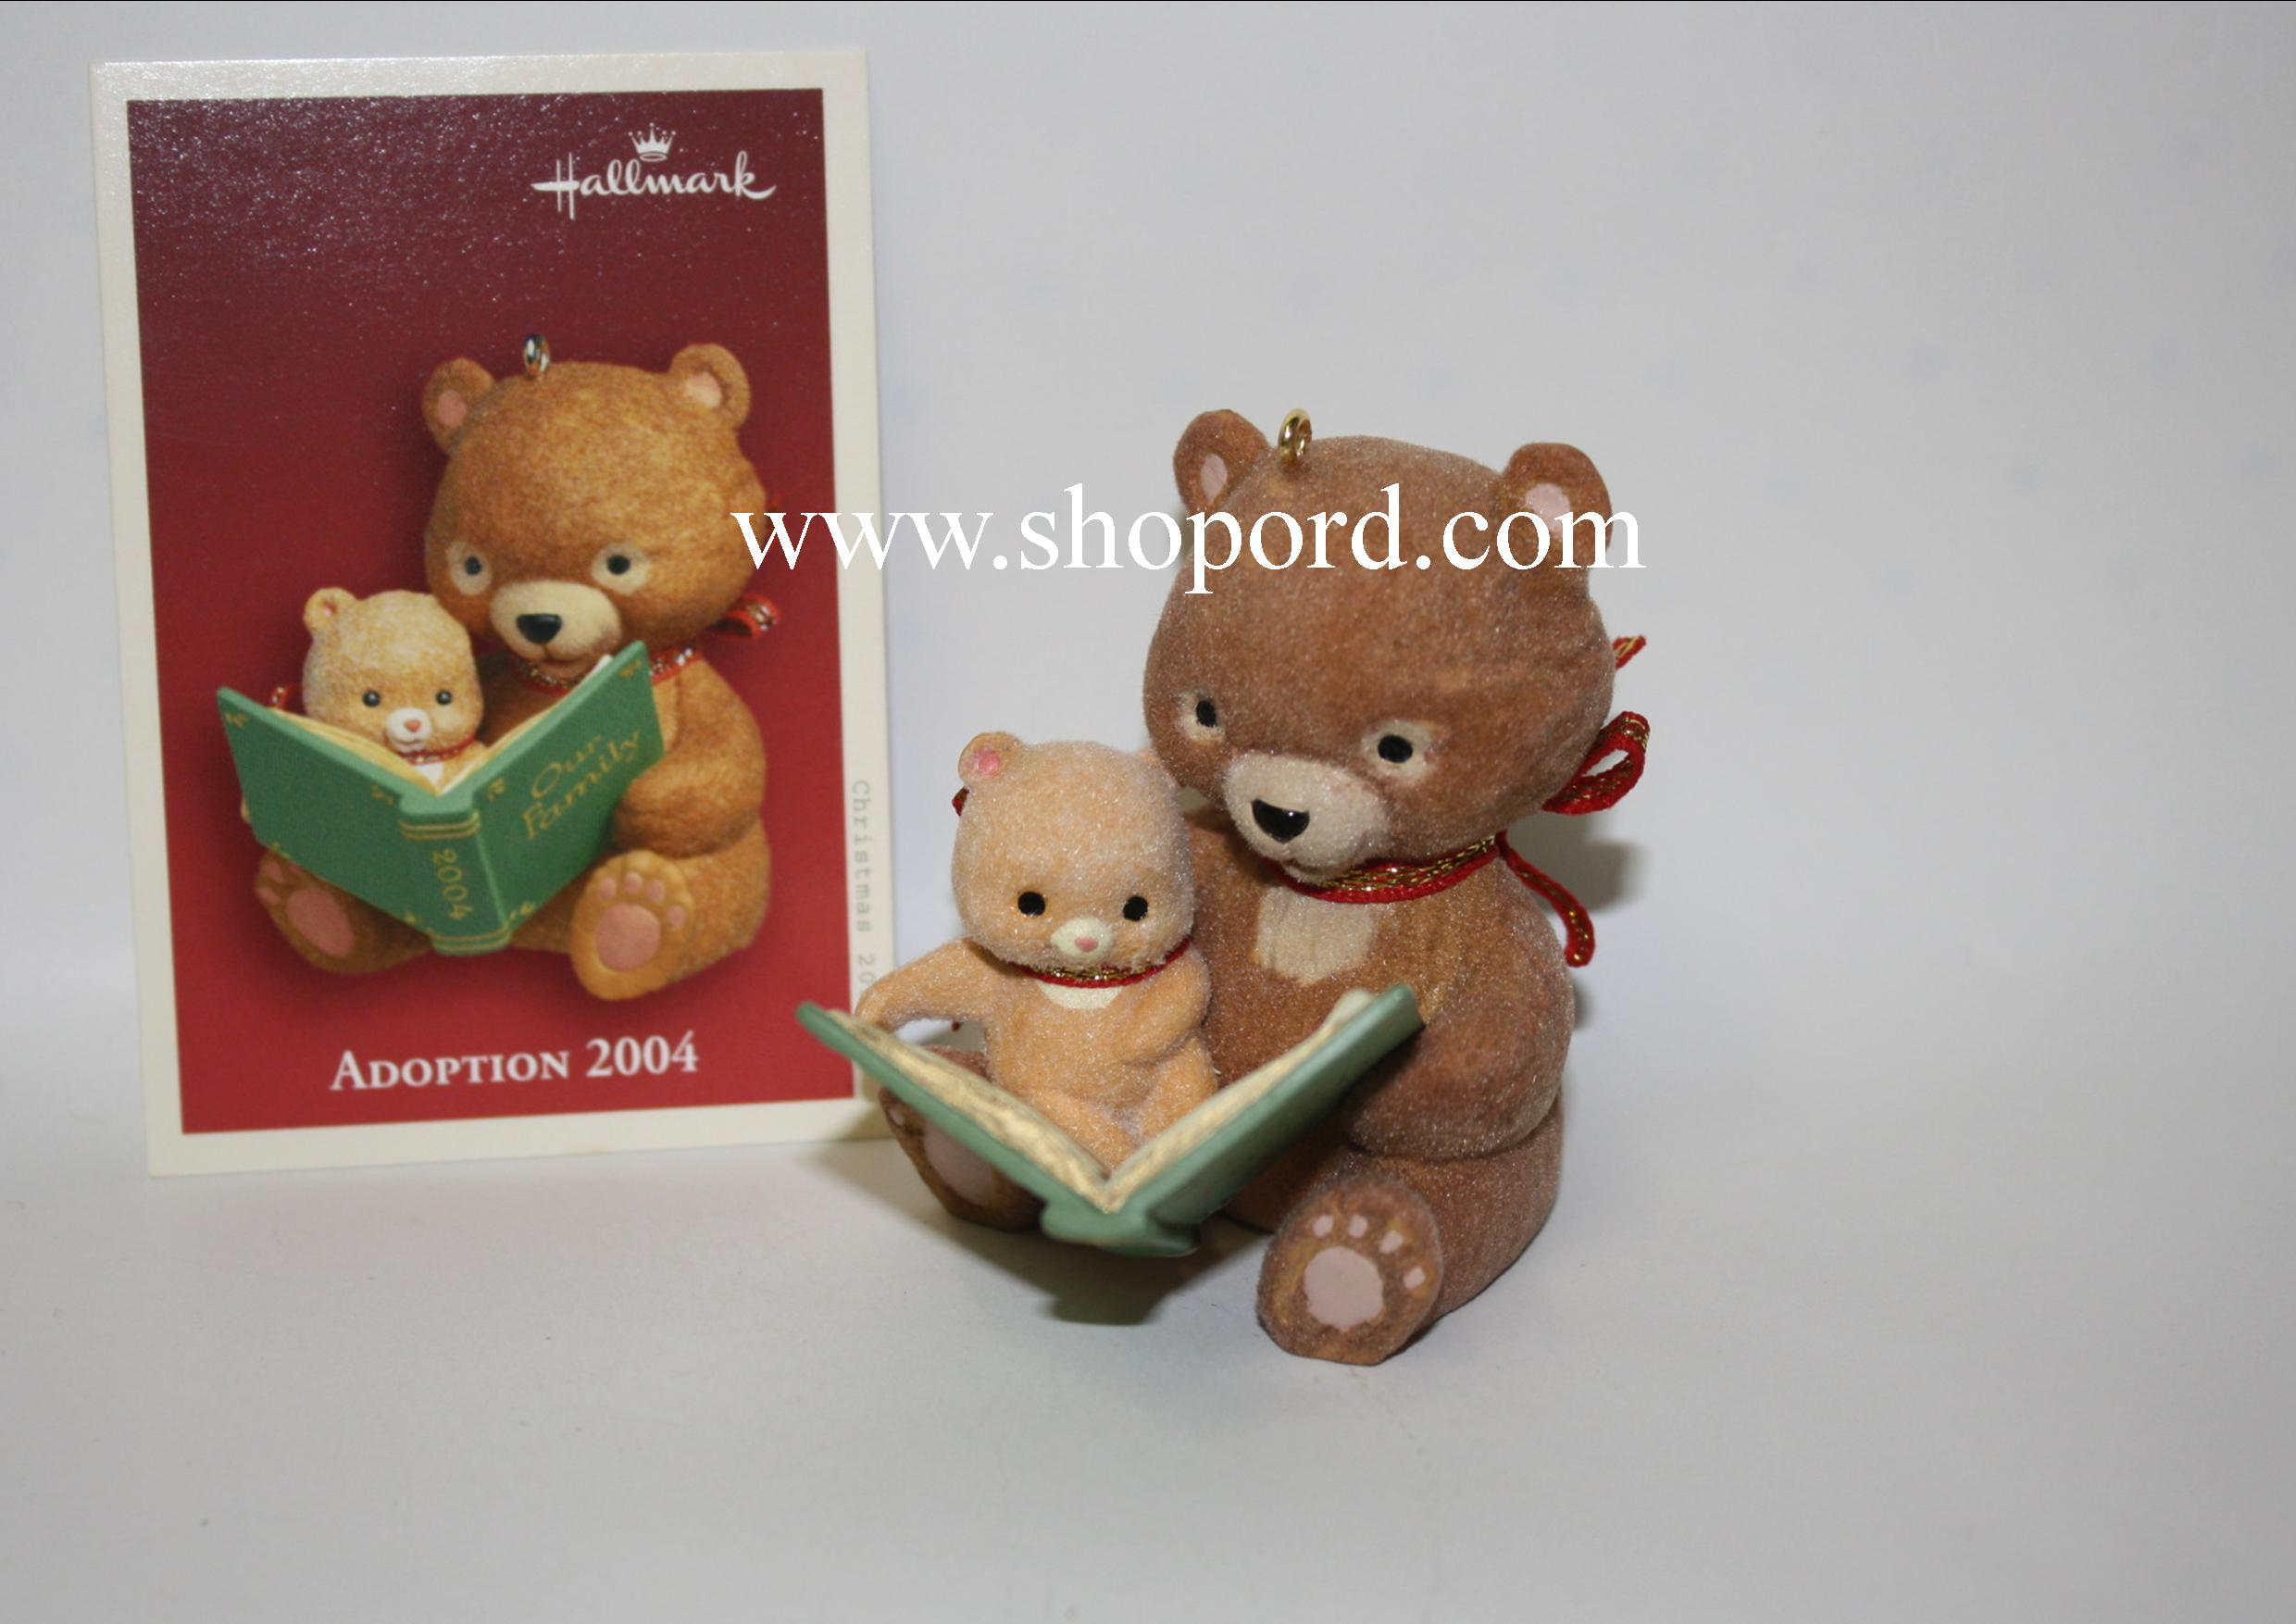 Hallmark 2004 Adoption 2004 Ornament QXG5641